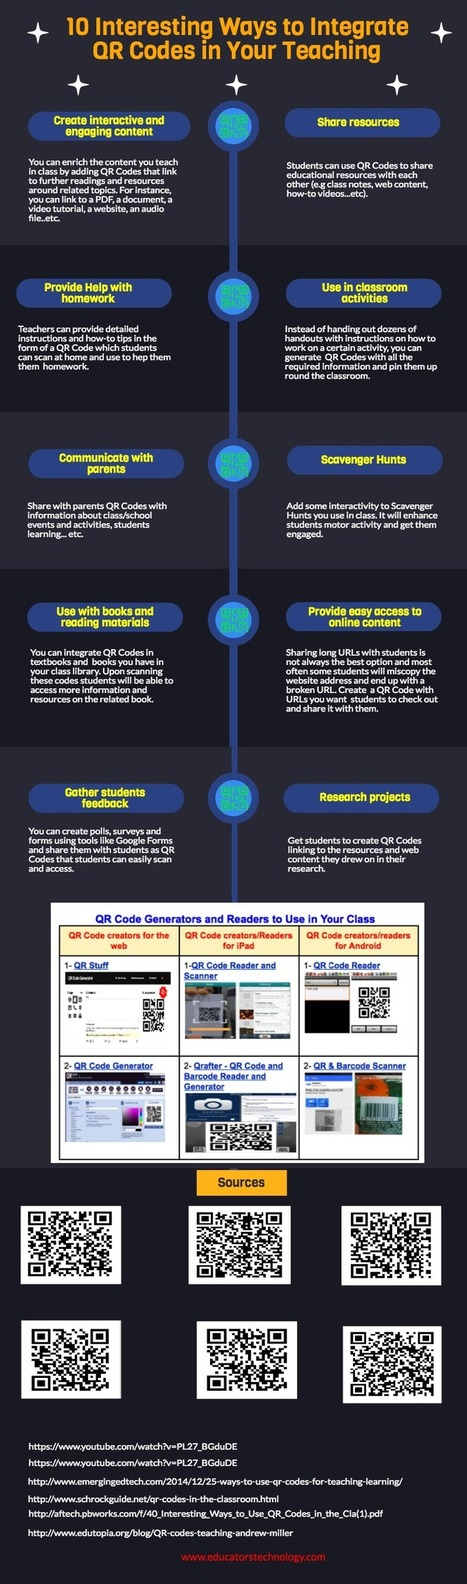 10 Interesting Ways to Integrate QR Codes in Your Teaching (Infographic) ~ Educational Technology and Mobile Learning | On education | Scoop.it